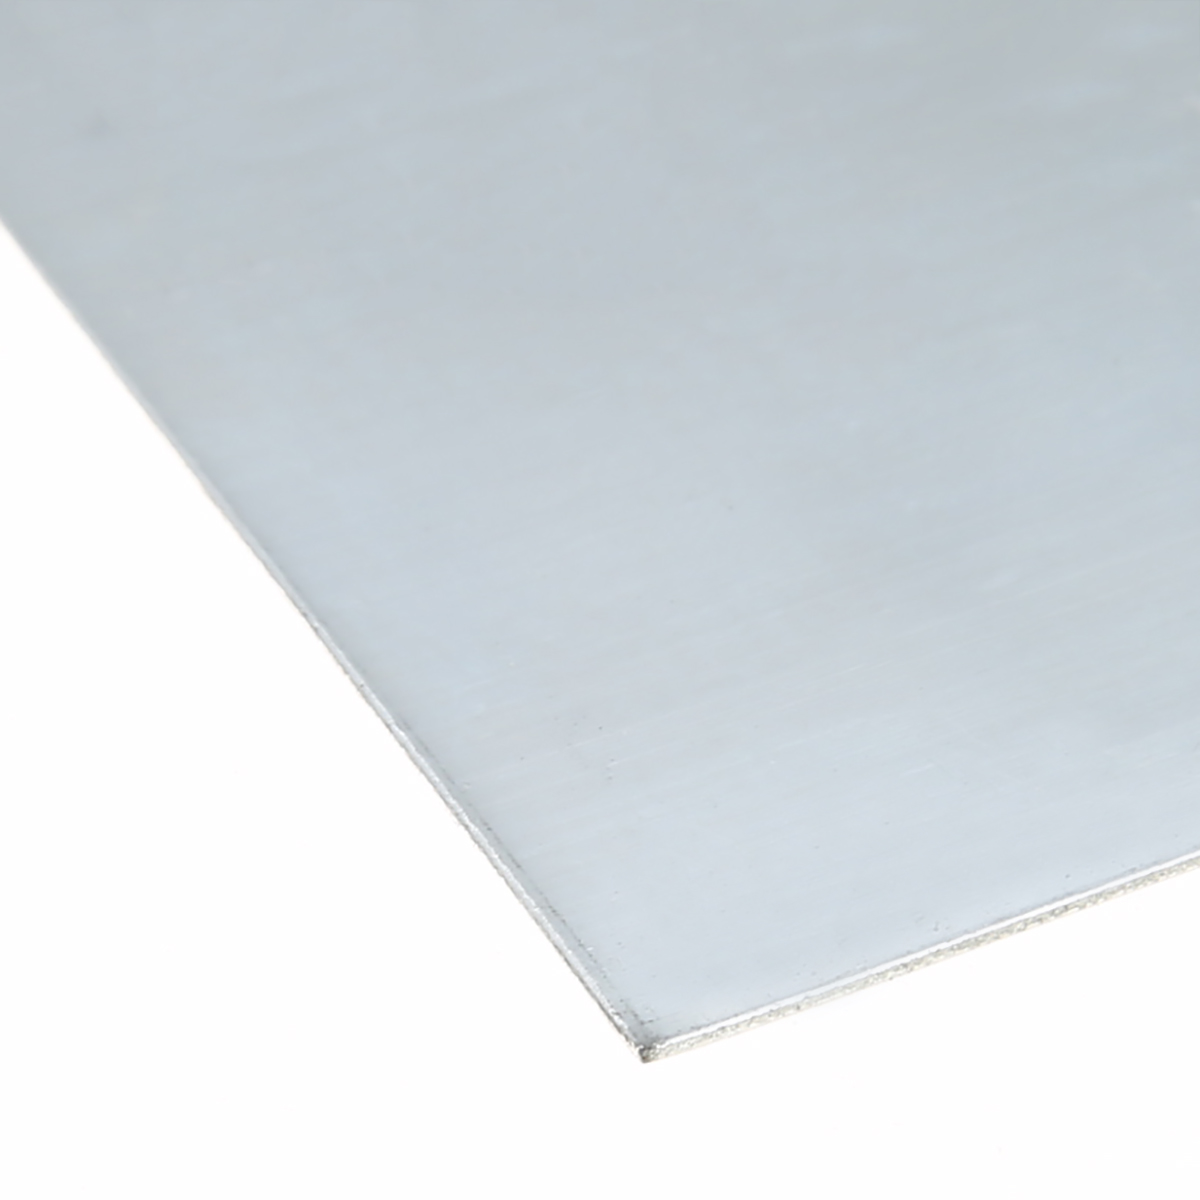 1pc Zinc Plate 99.9% Pure Zinc Zn Sheet Plate 100mmx100mmx0.2mm For Science Lab Accessories